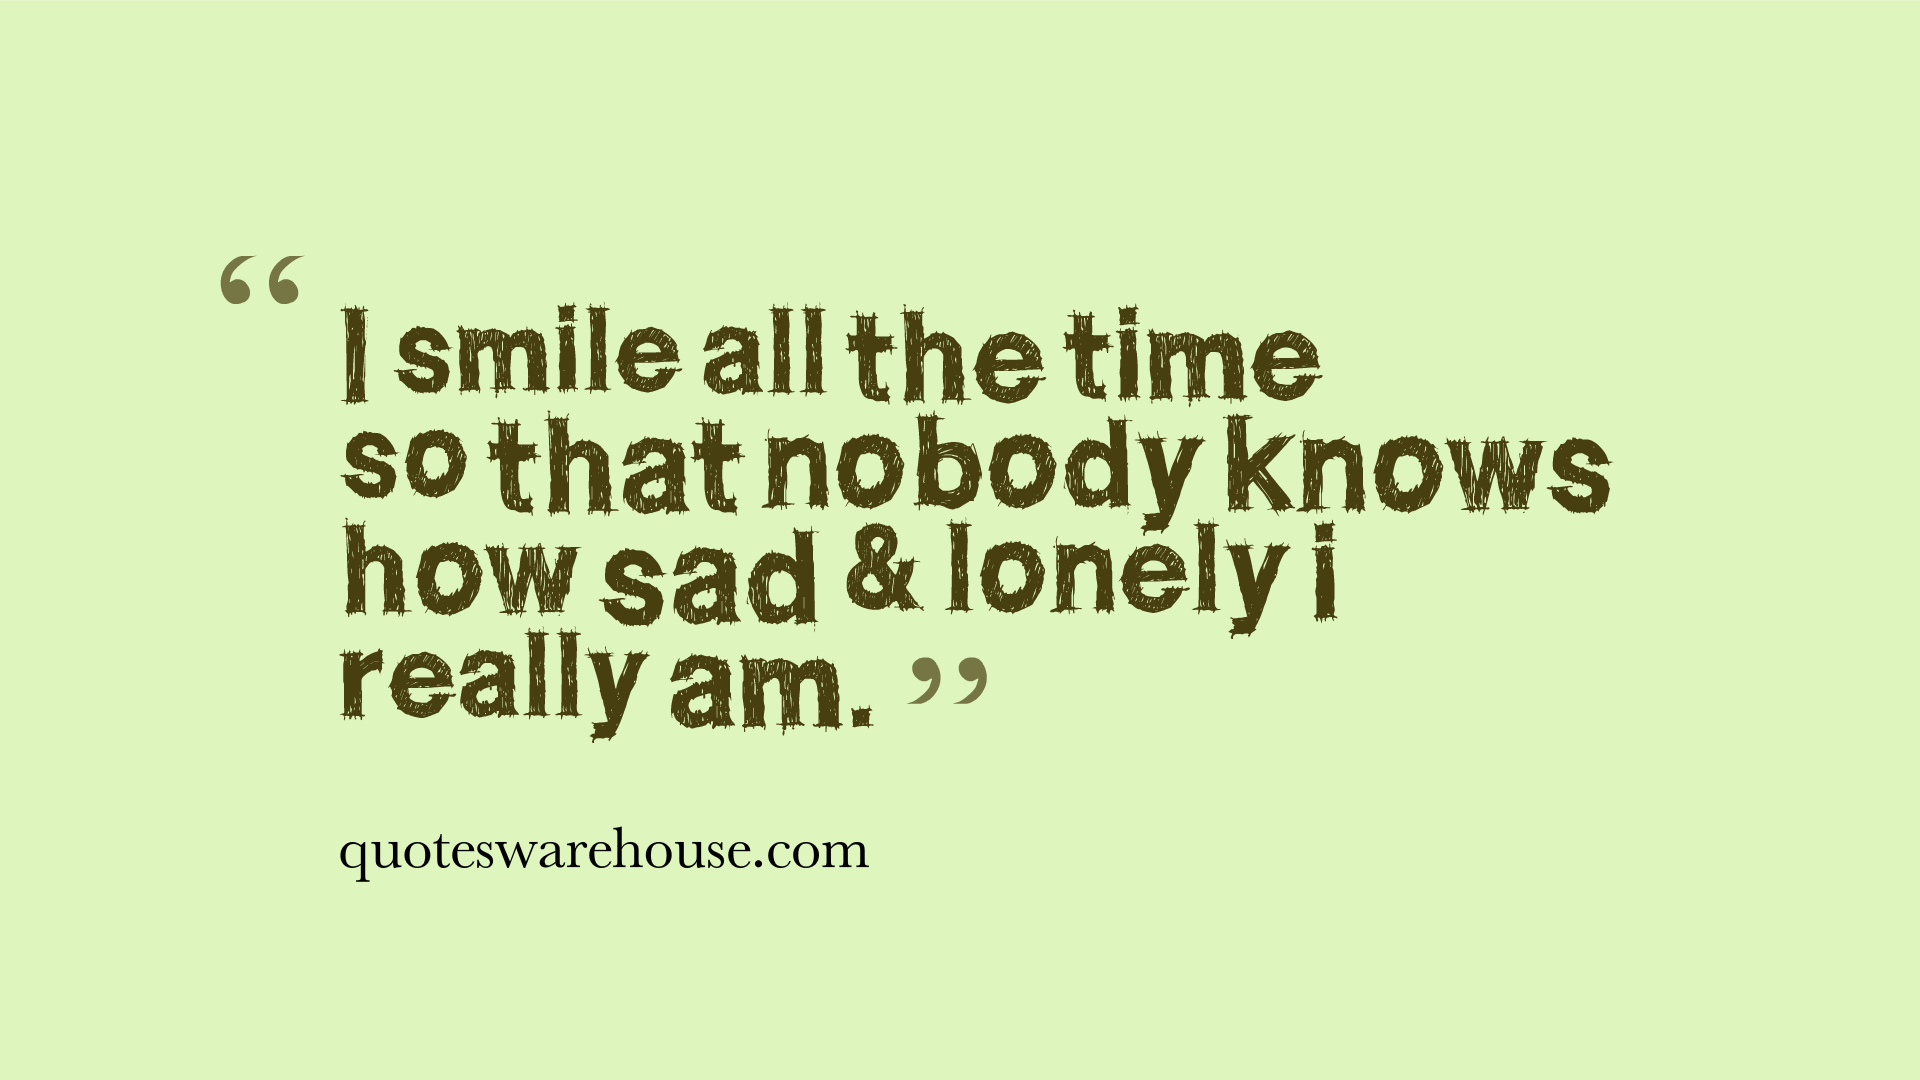 Quotes about Feeling Sad (82 quotes)